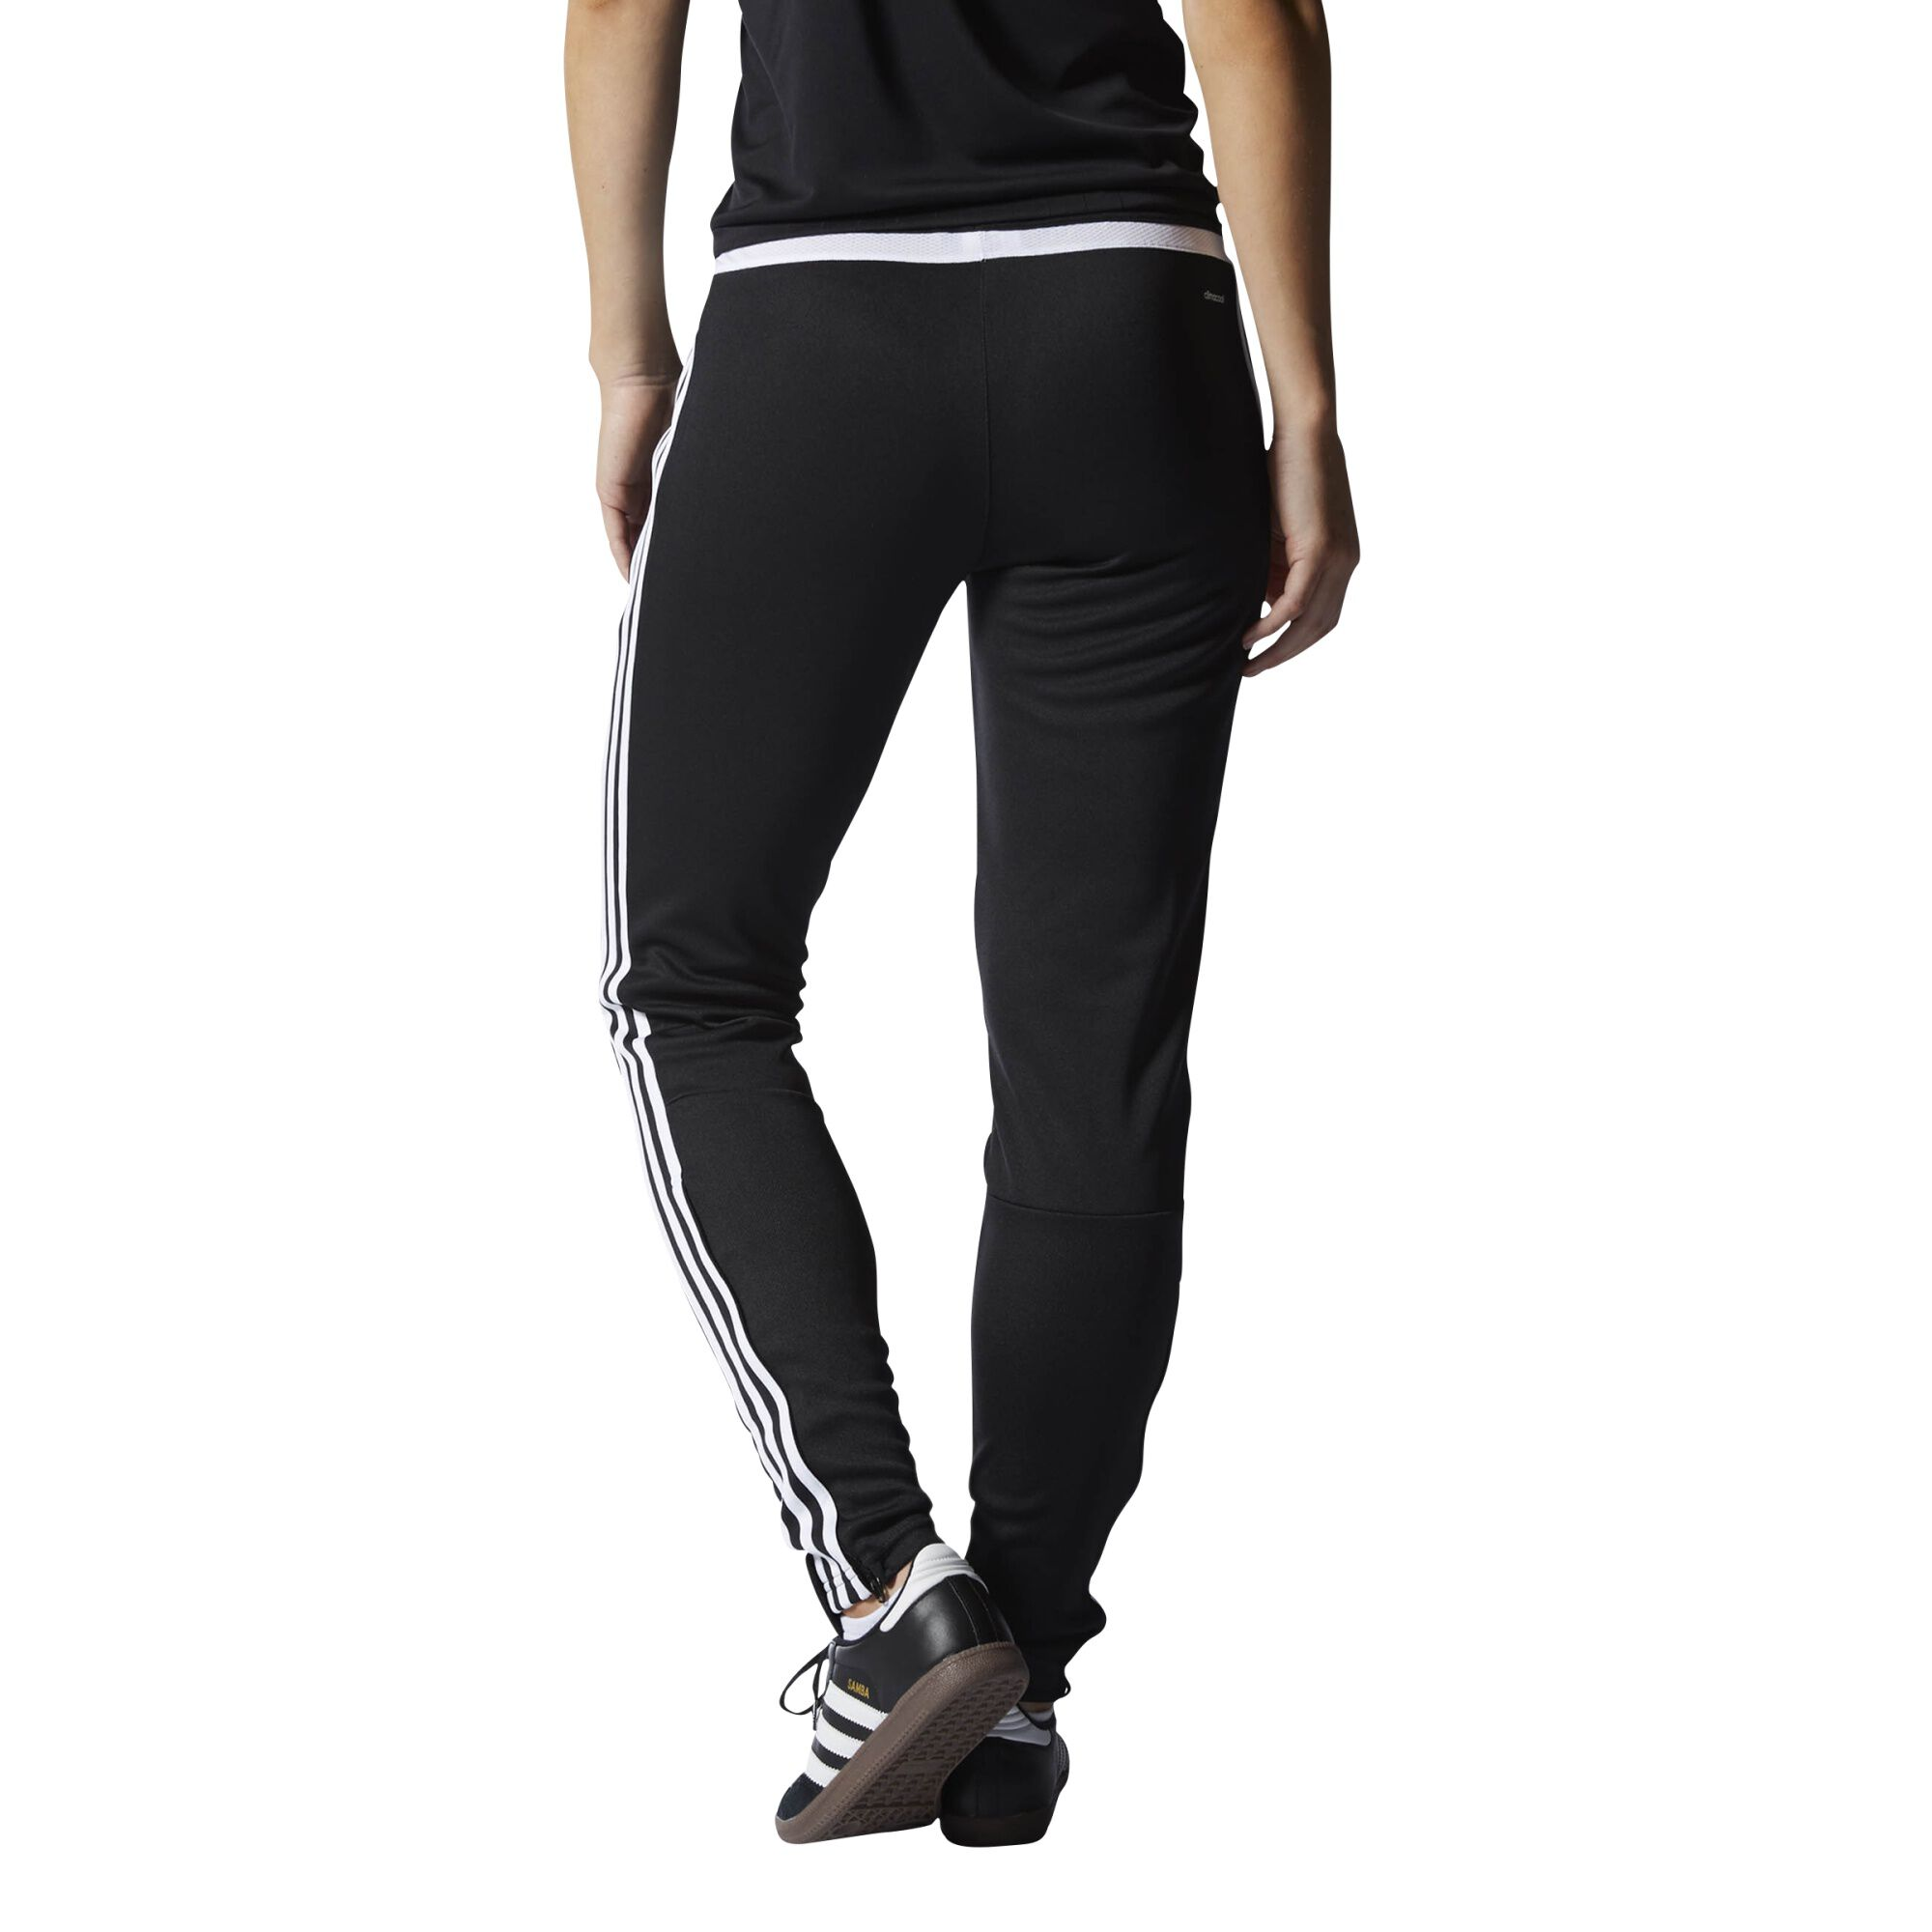 Awesome Adidas Team Issue Pant BlackHeather AY7643  Women39s Tennis